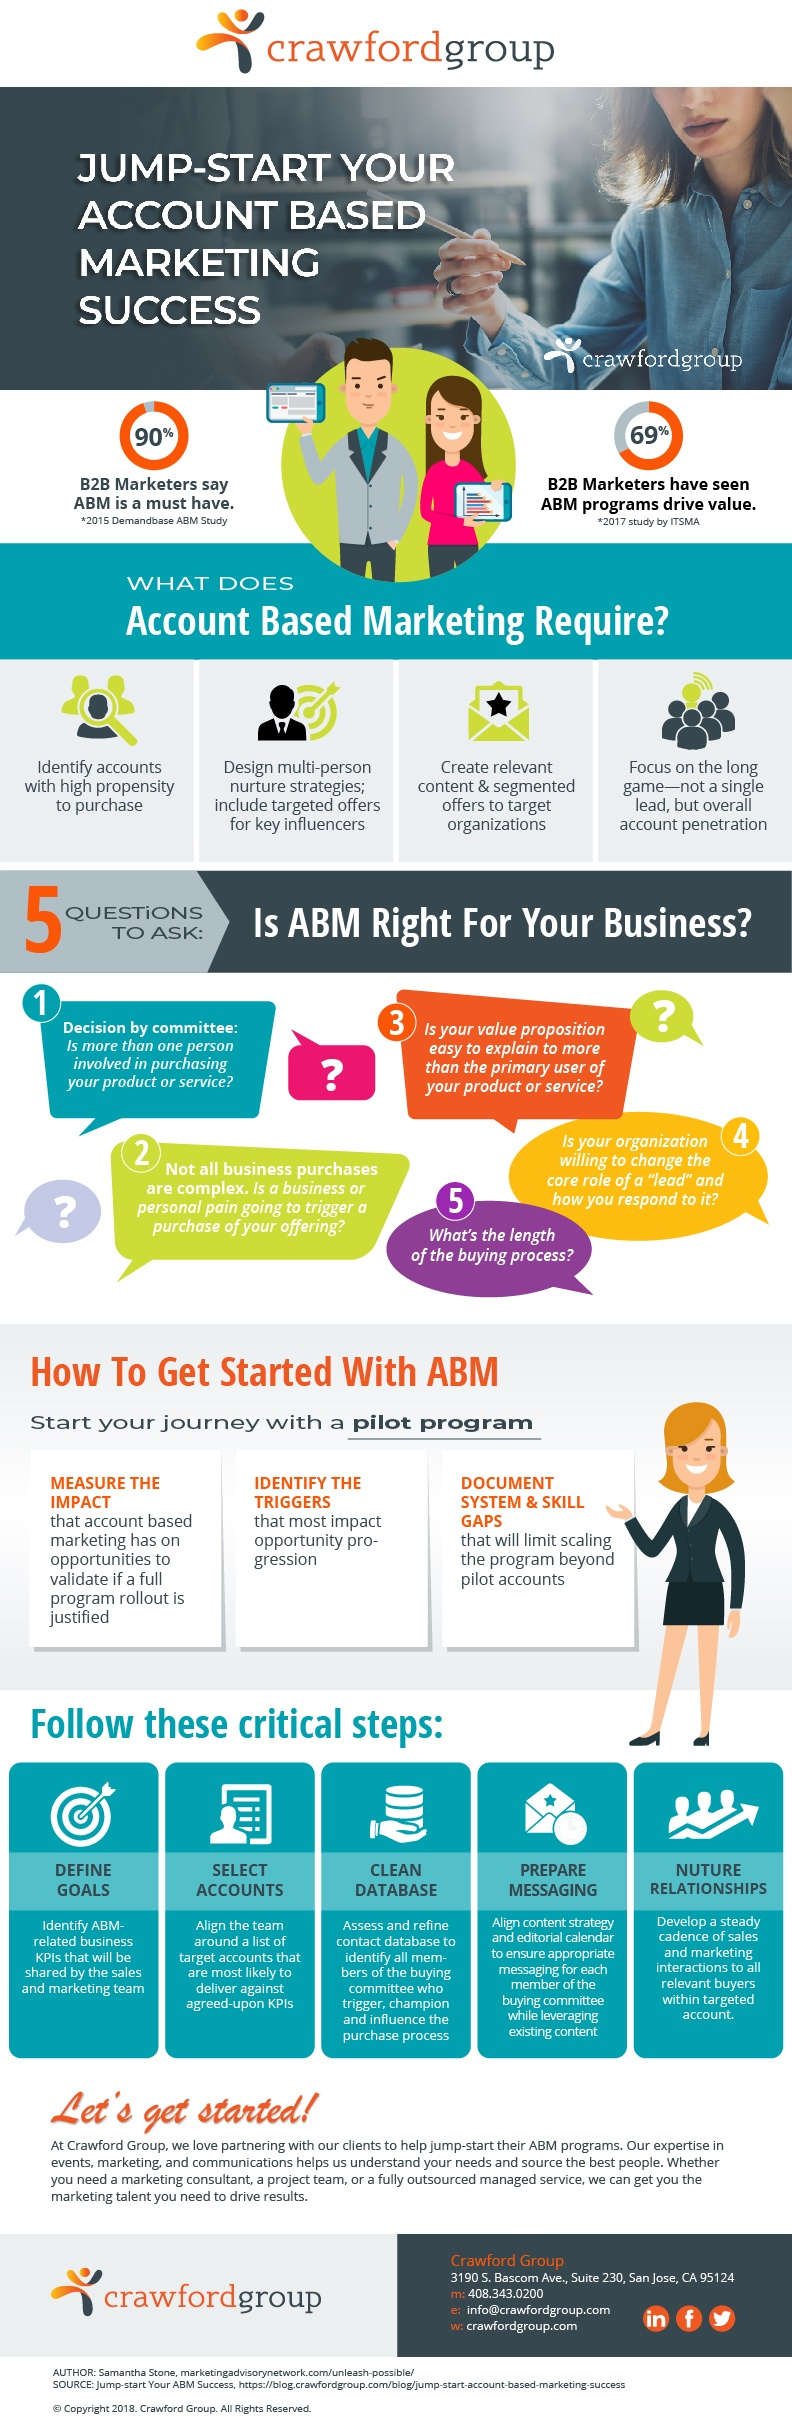 Jumpstart Your ABM Program Success [Infographic] - What does Account Based Marketing require? Five questions to ask yourself if ABM is right for your business? How to get started with your ABM journey with a pilot program.